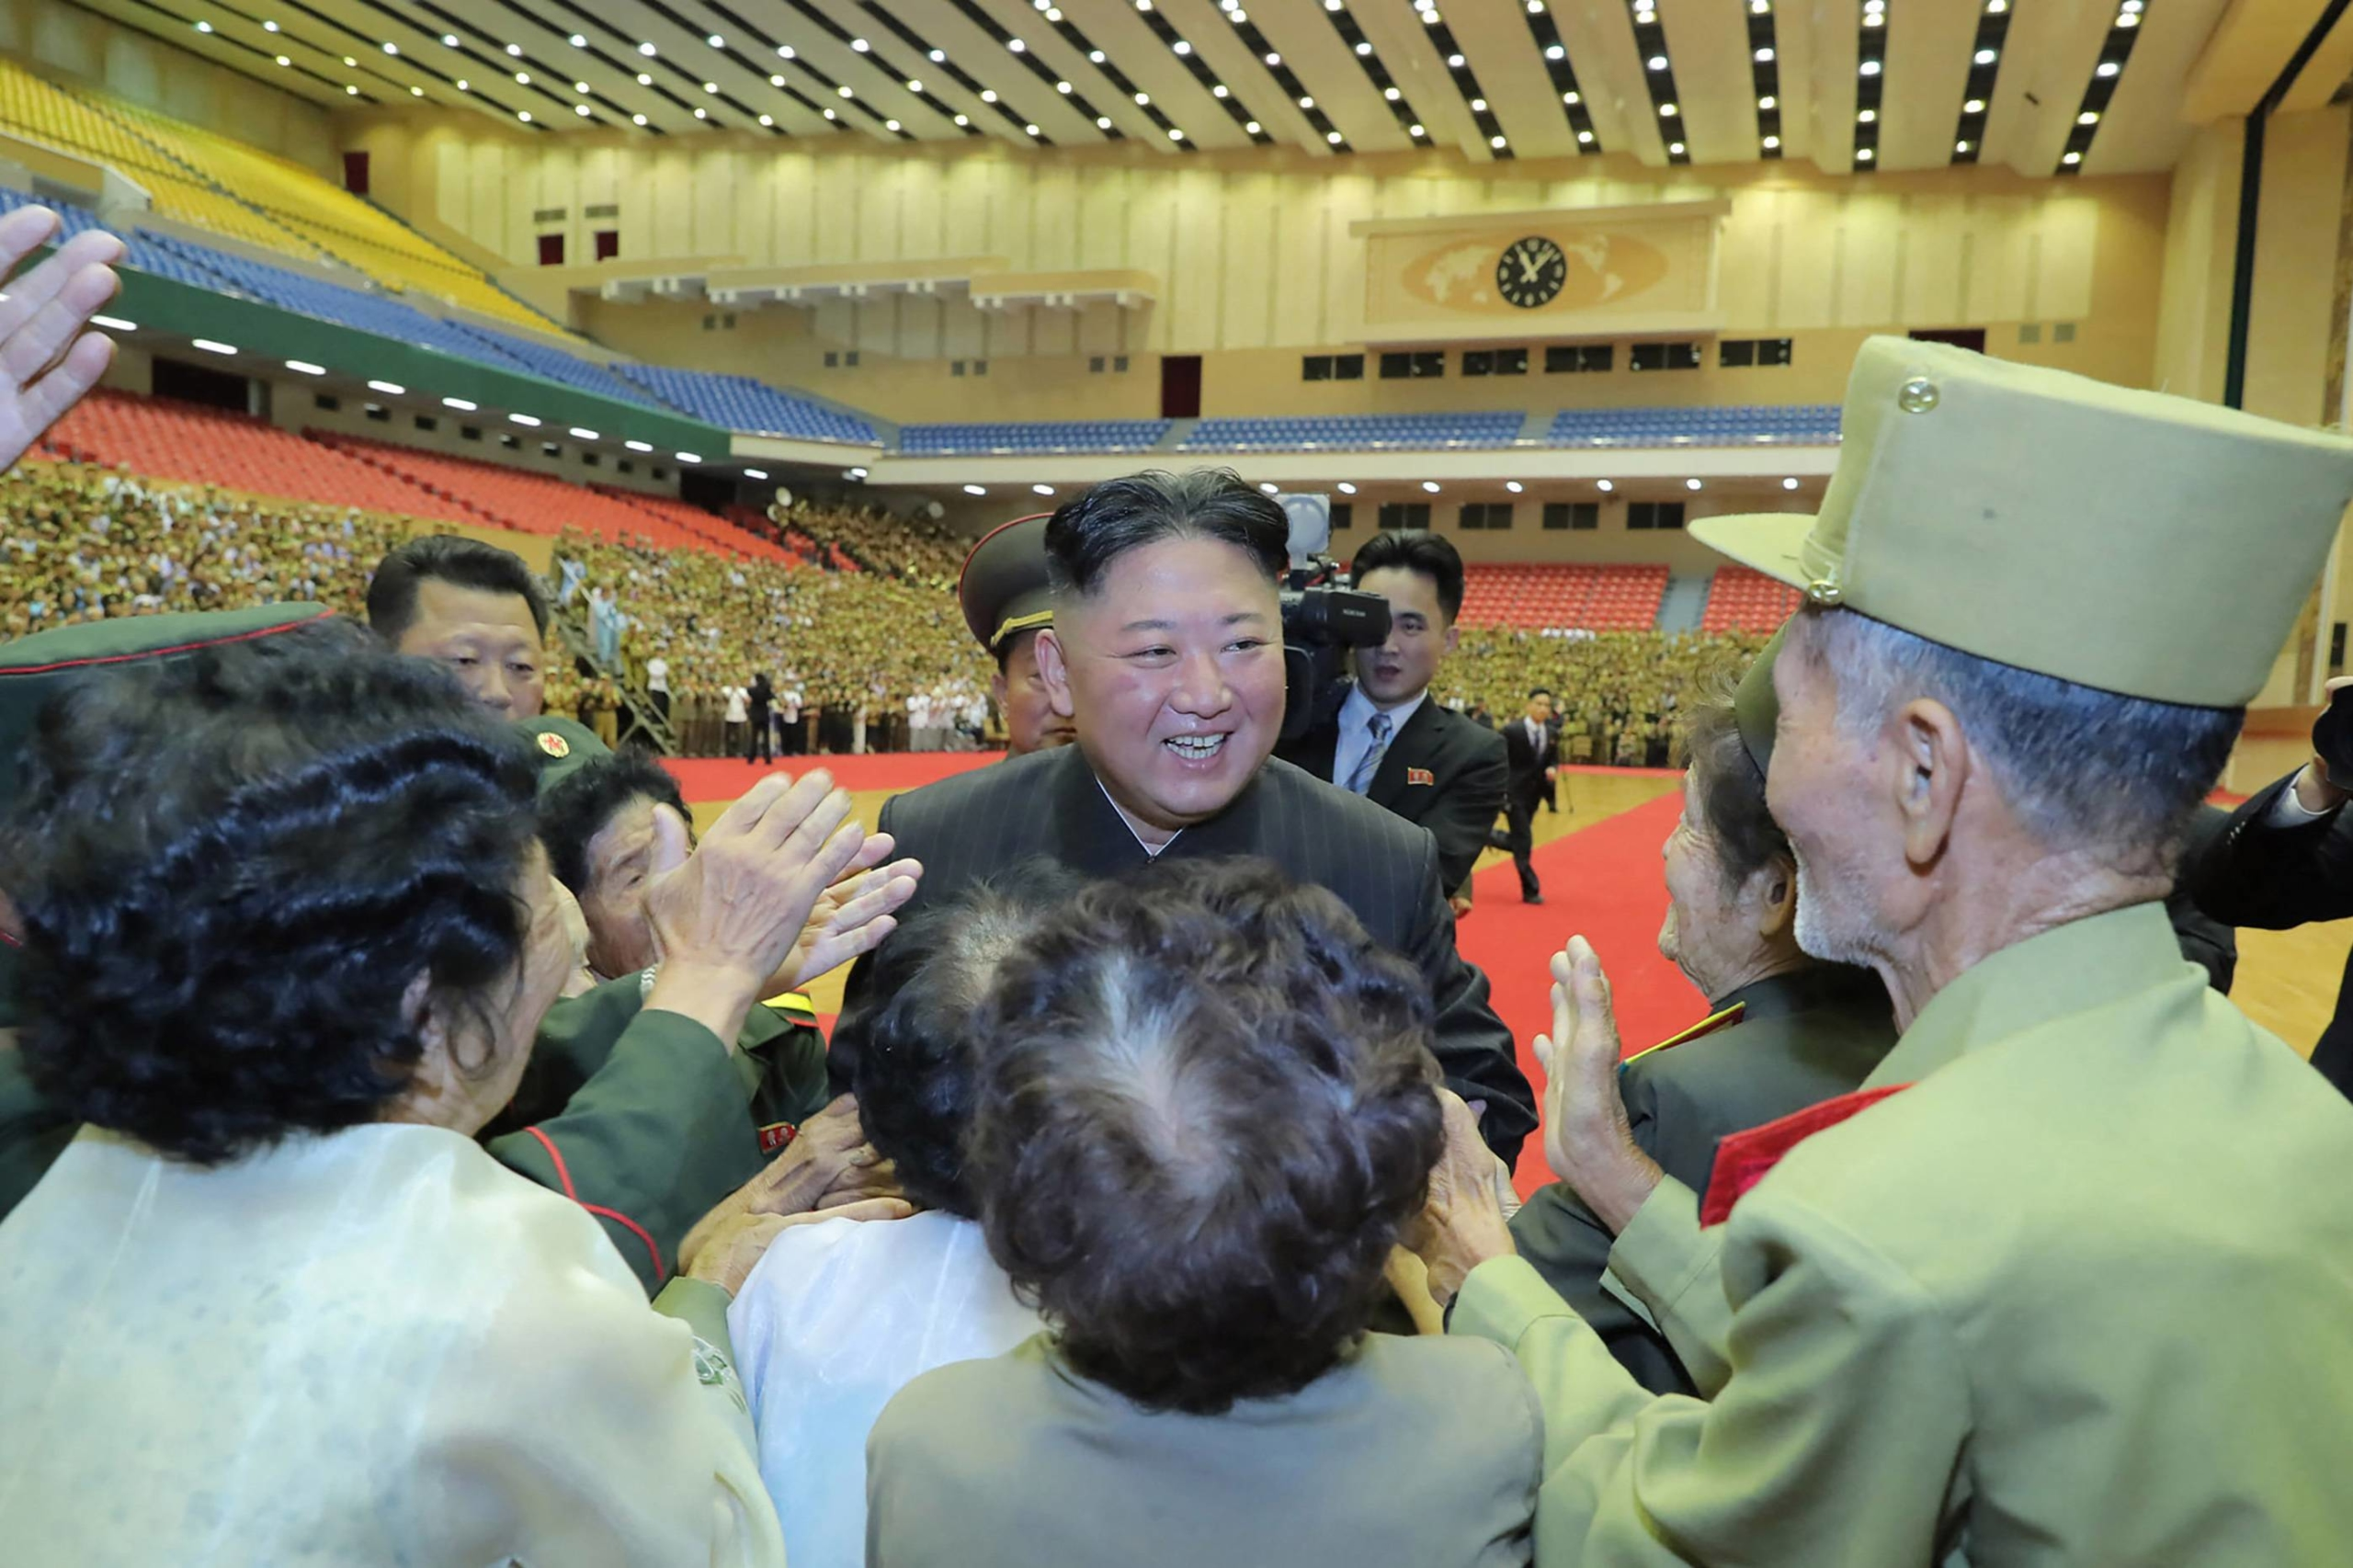 North Korean leader Kim Jong Un takes part in a photo session in Pyongyang on Thursday.   KCNA / KNS / VIA AFP-JIJI